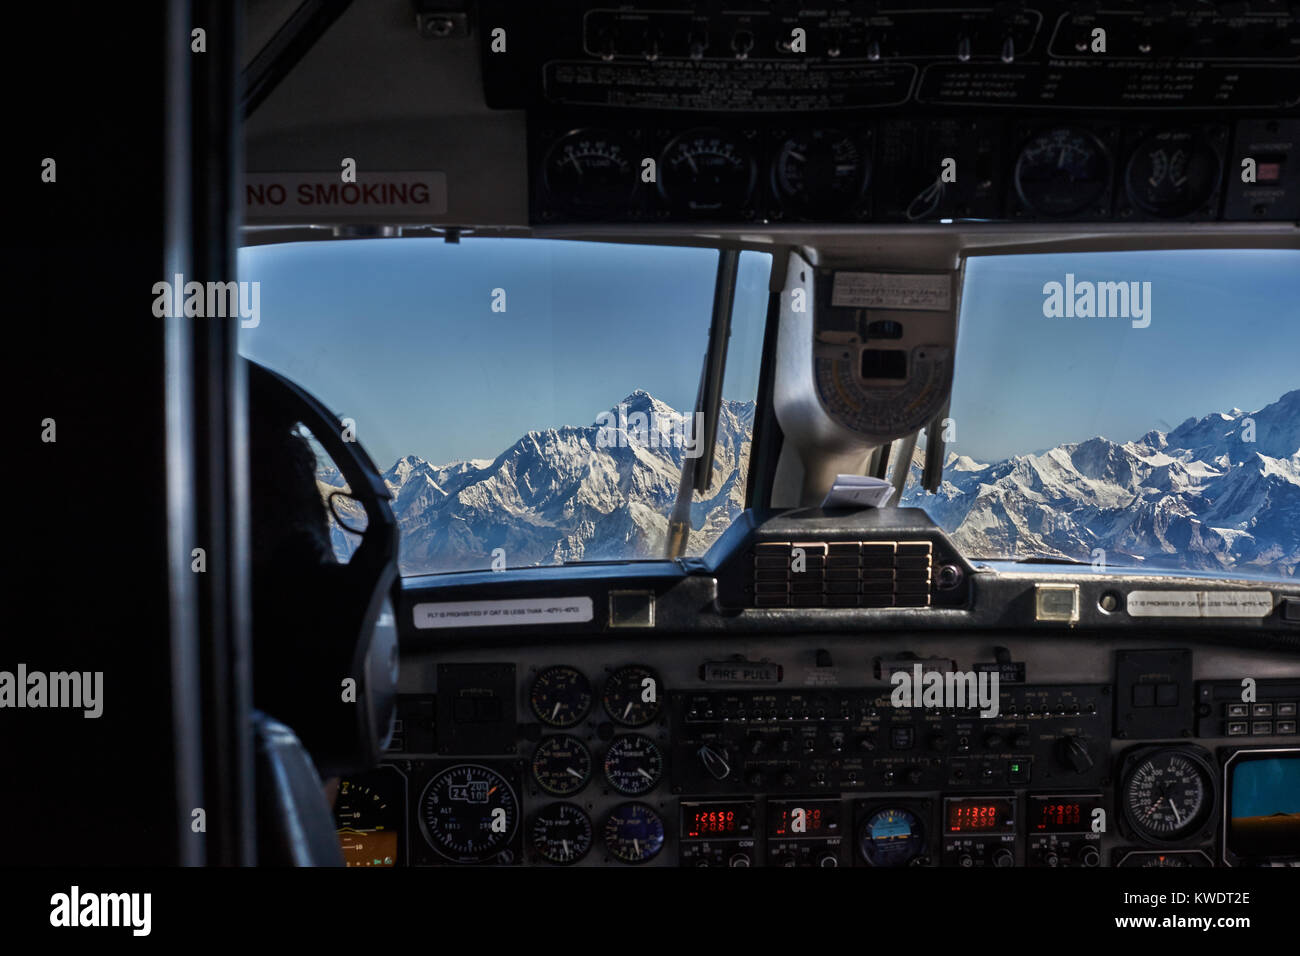 Everest view from airplane cockpit, Nepal - Stock Image